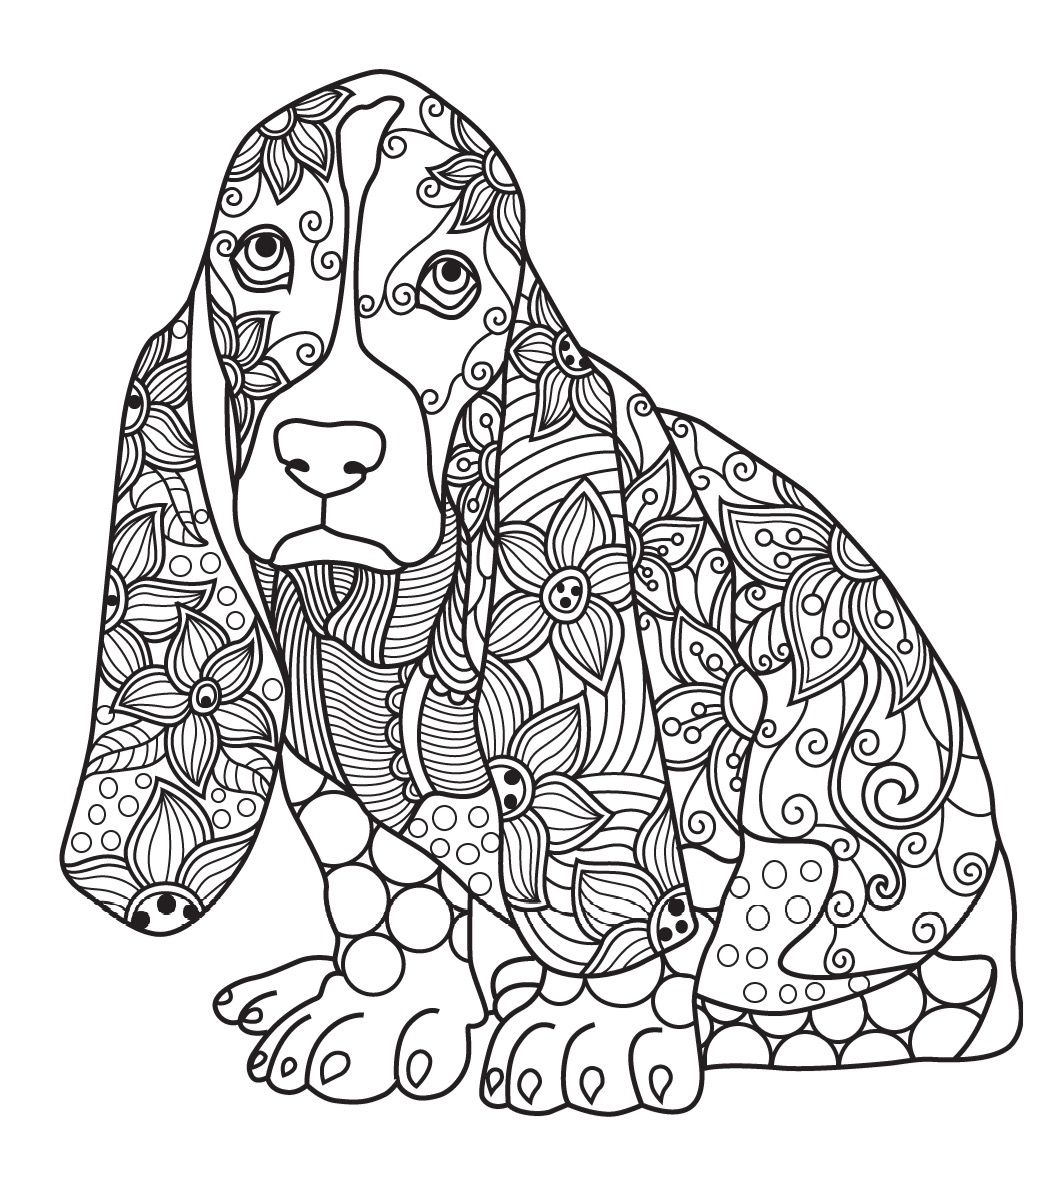 Dog | Colorish: coloring book for adults mandala relax by ...